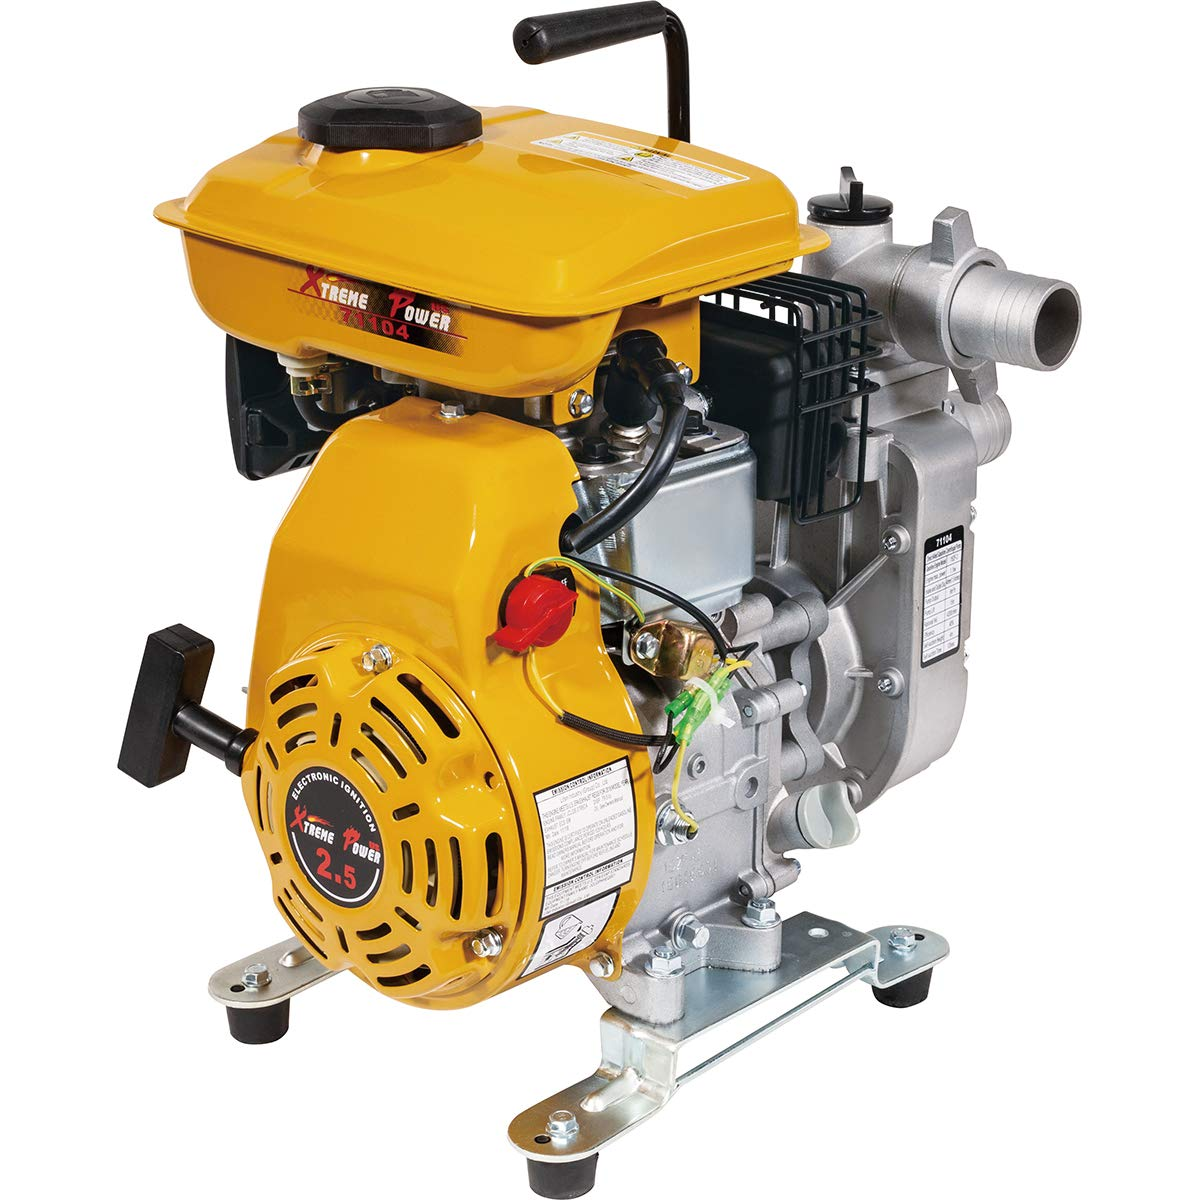 Max 73% OFF XtremepowerUS 2.5 HP 4 Stroke Water Portable Lowest price challenge Pump Tr Gas-Powered